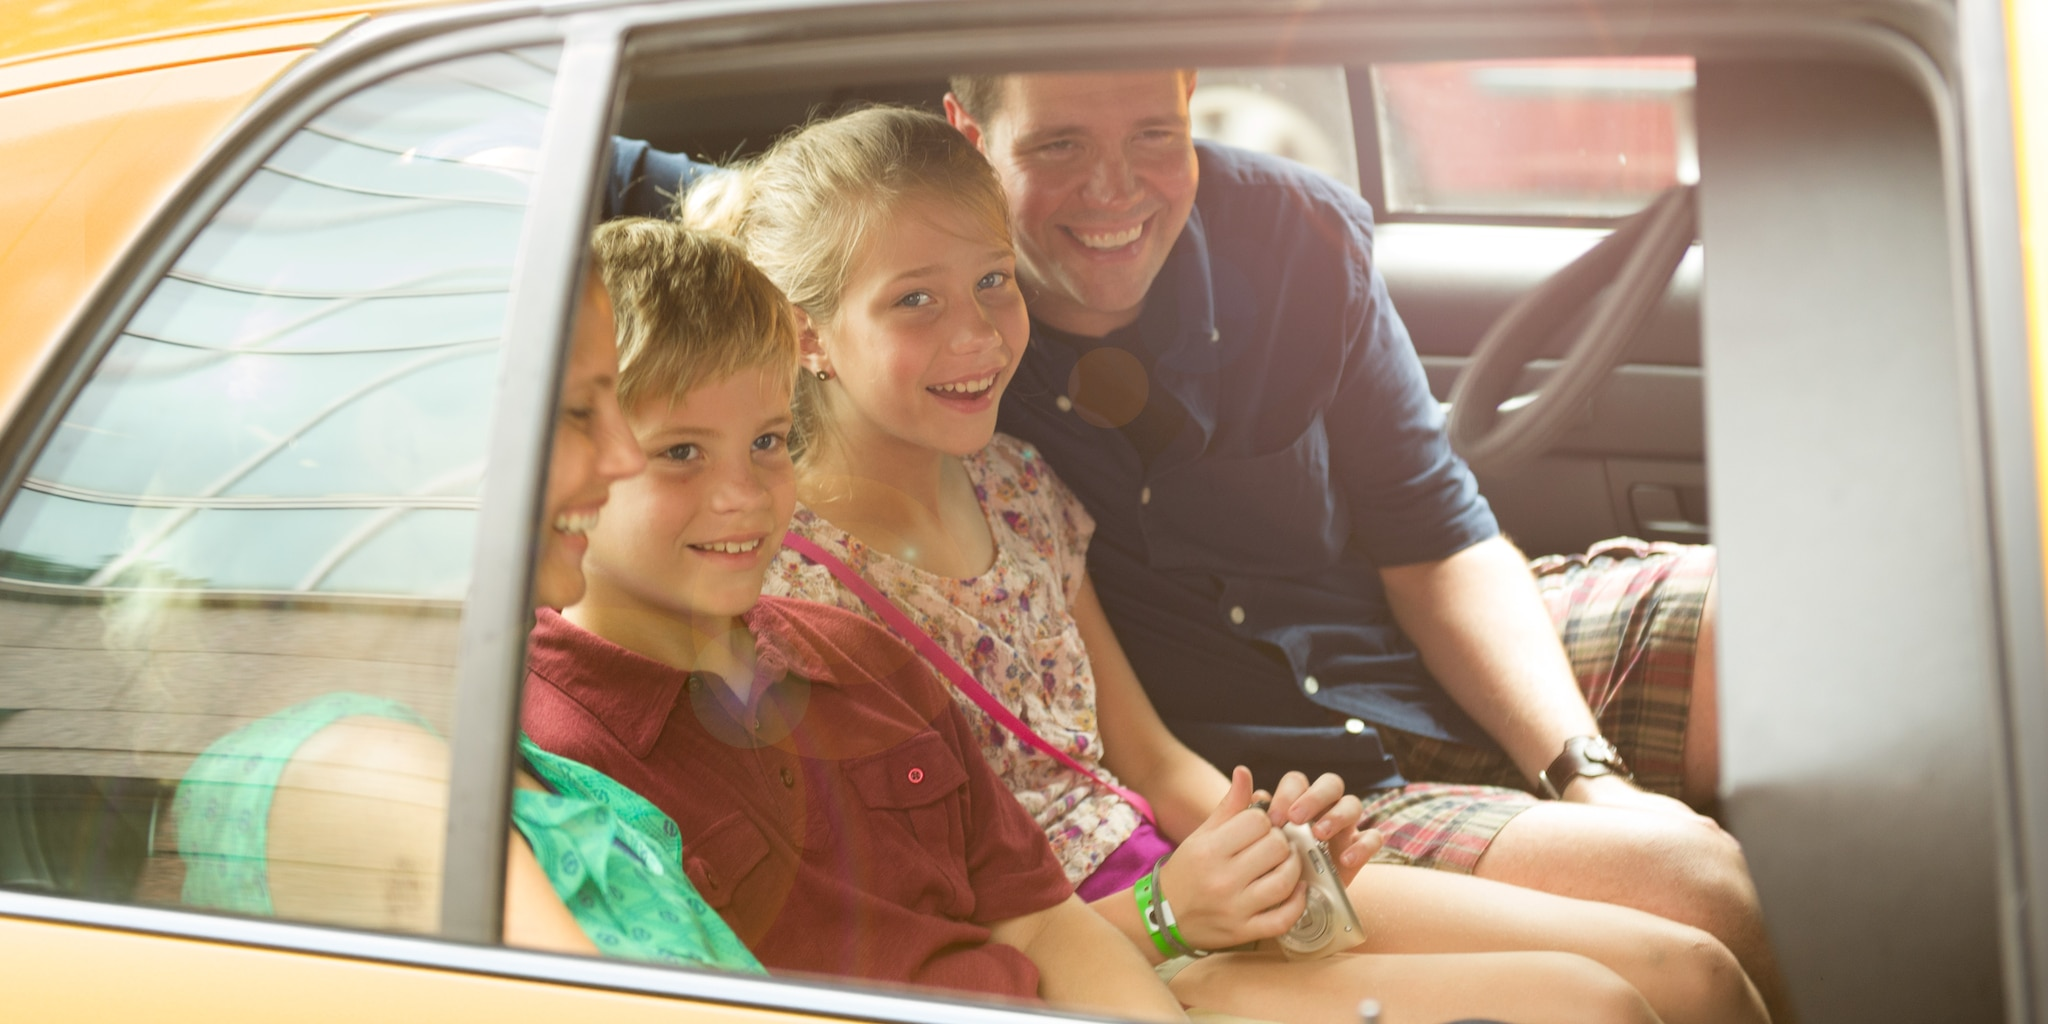 A smiling family of 4 rides in the back of a sedan